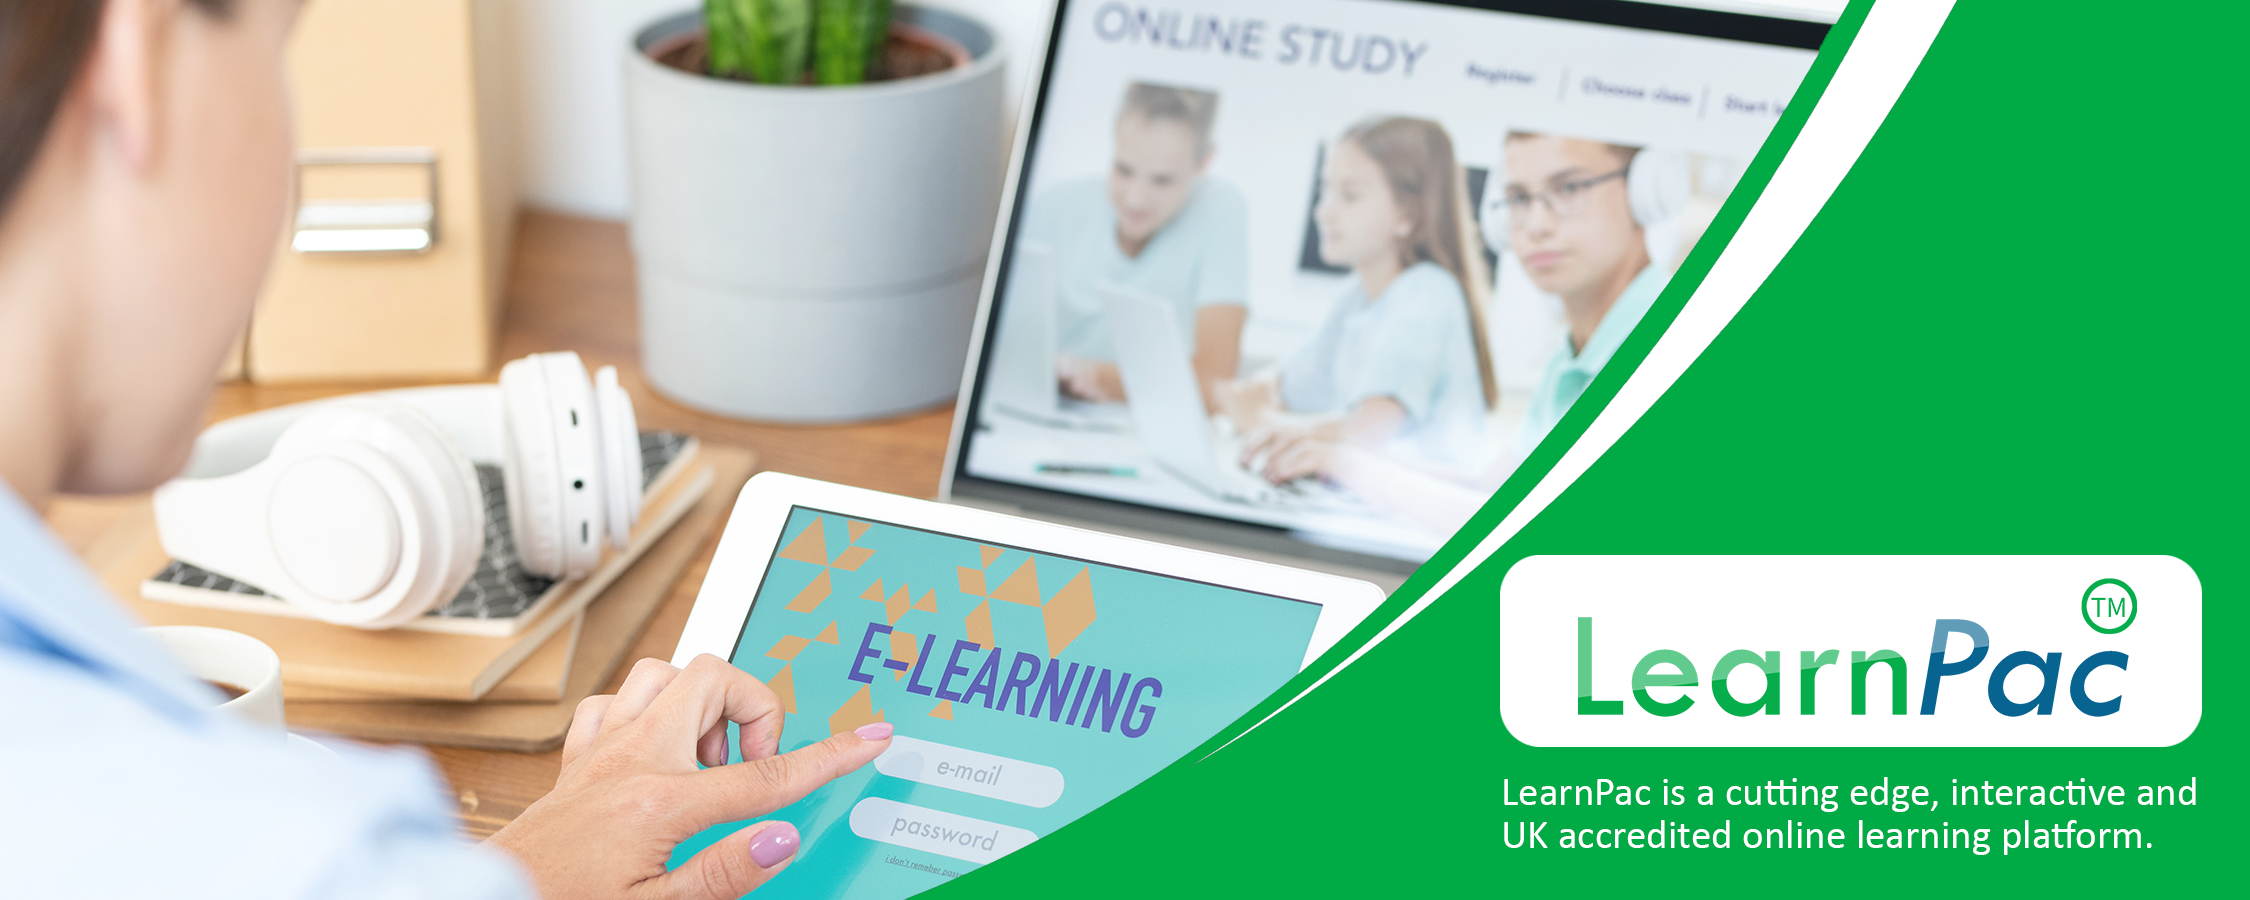 Chaperone Training for Health and Care - Online Learning Courses - E-Learning Courses - LearnPac Systems UK -